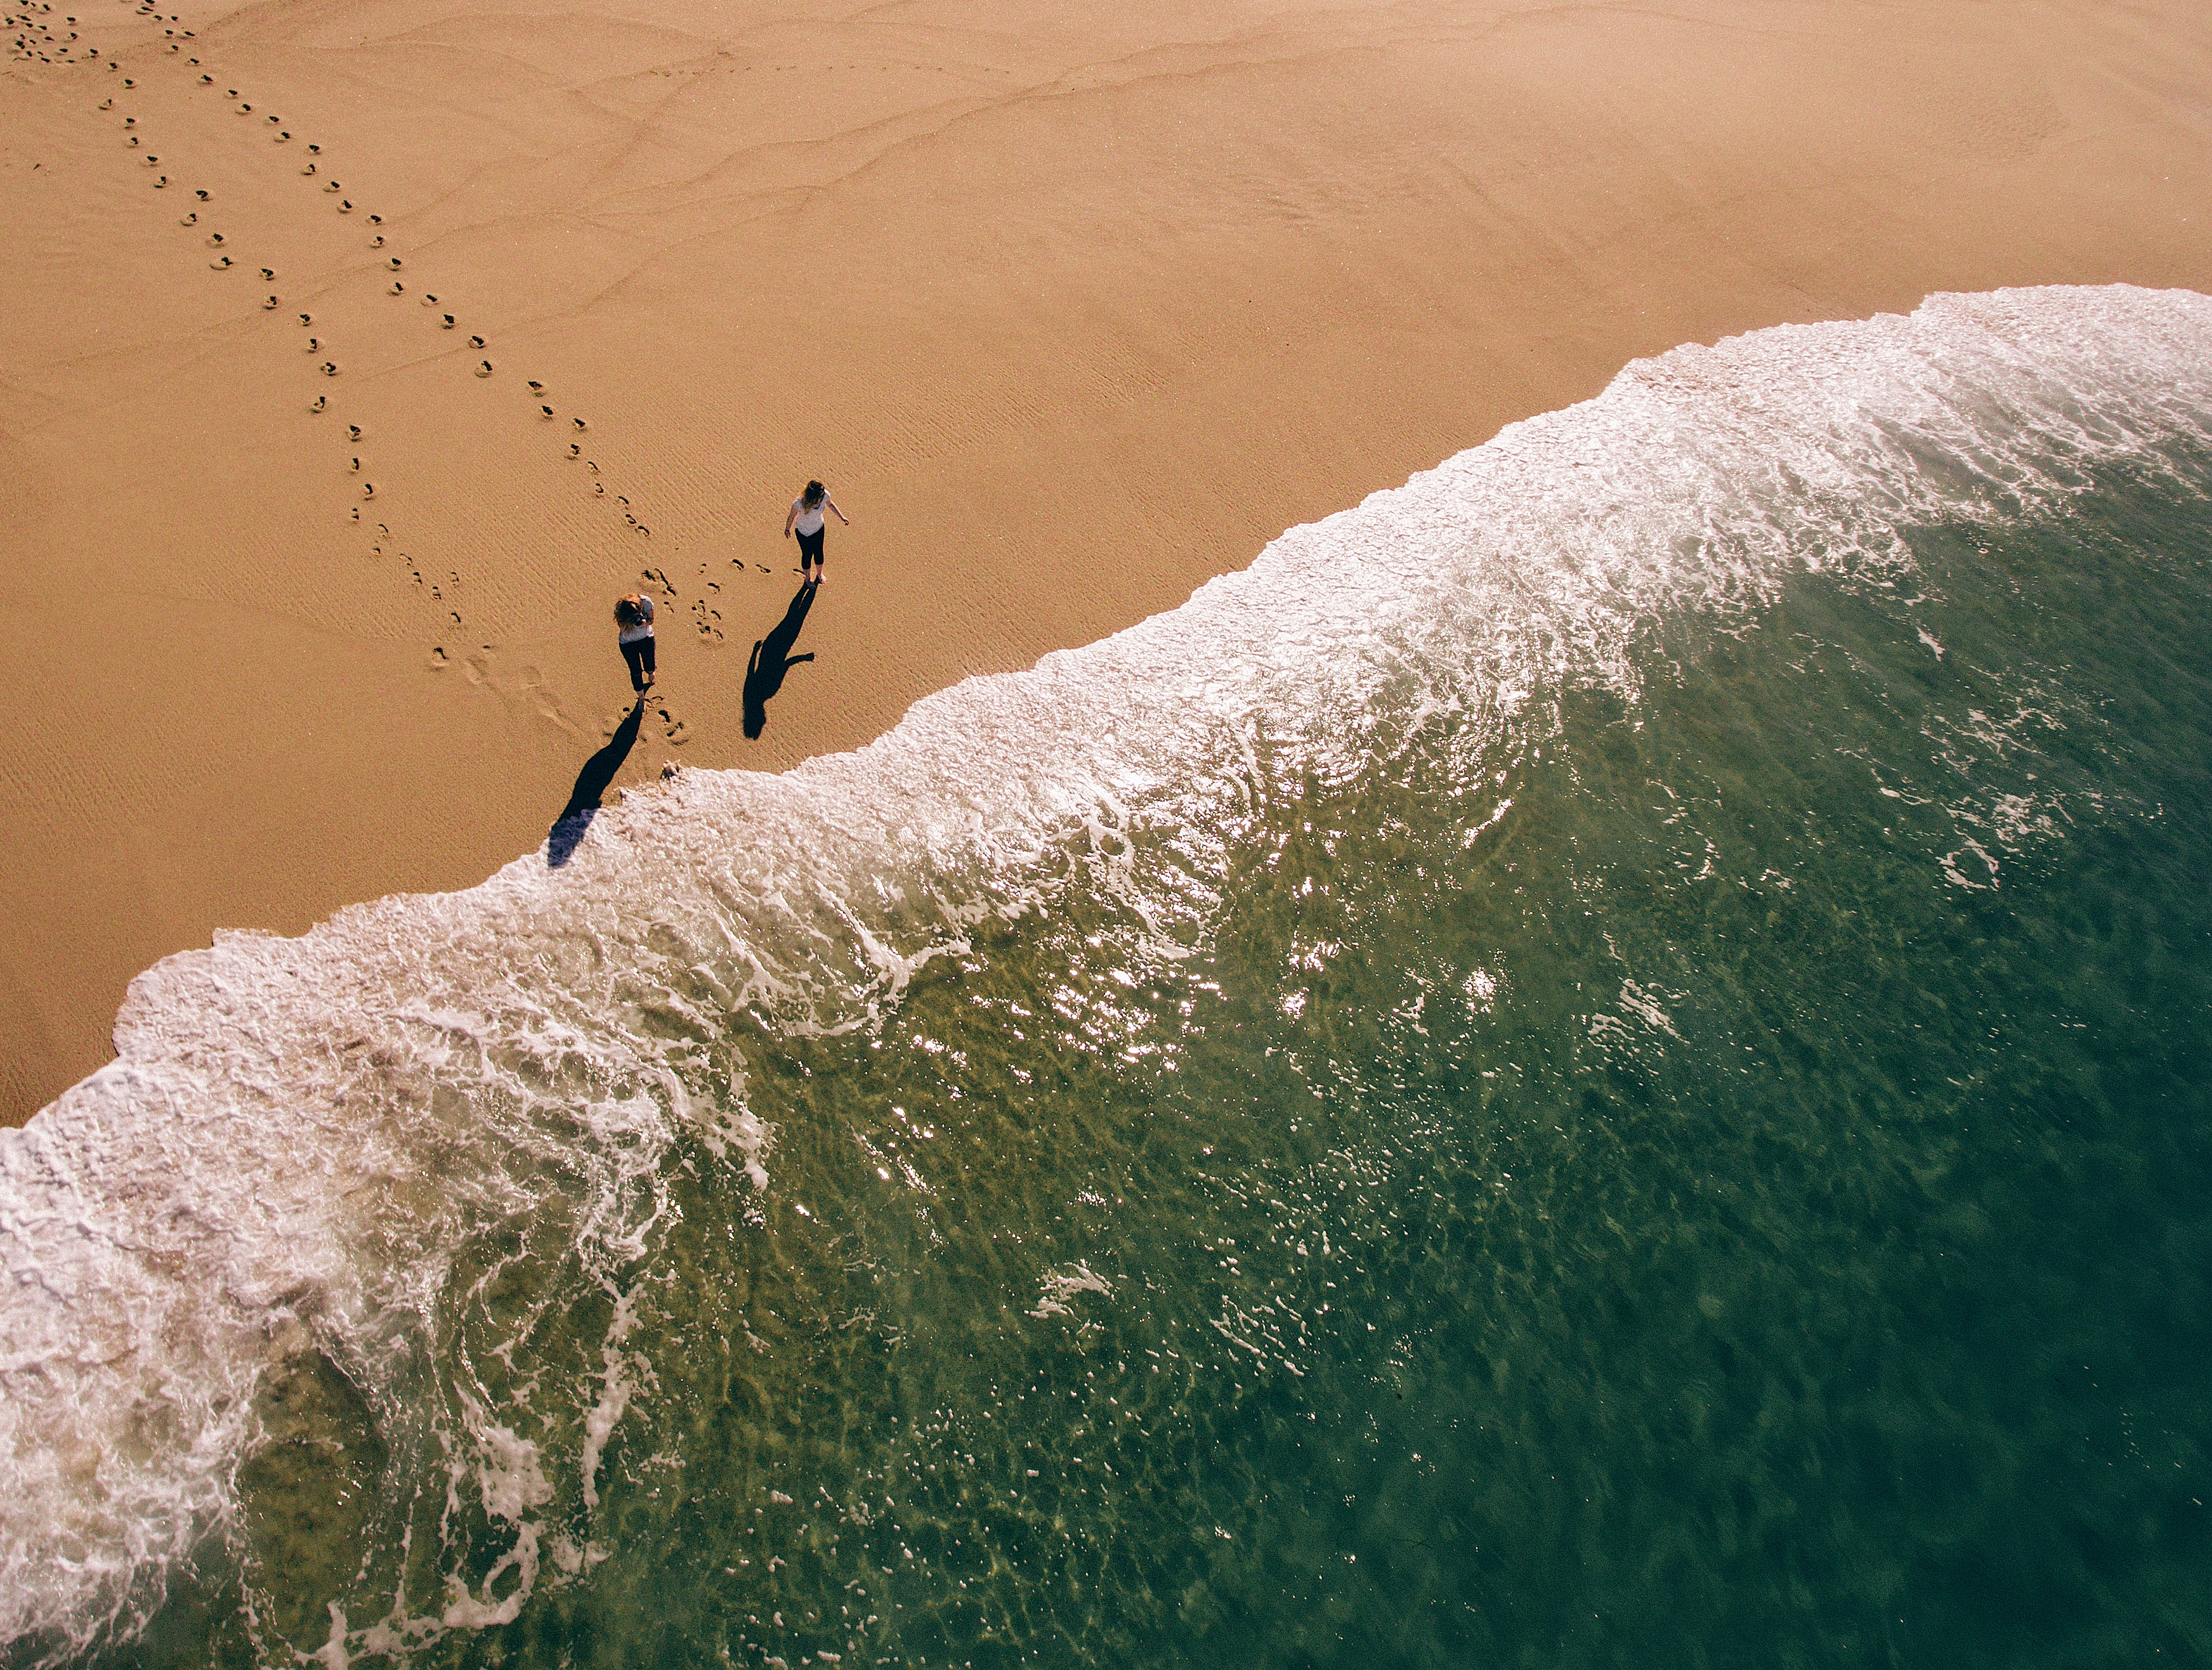 A drone shot of two women walking towards the sea and leaving footprints in the wet sand